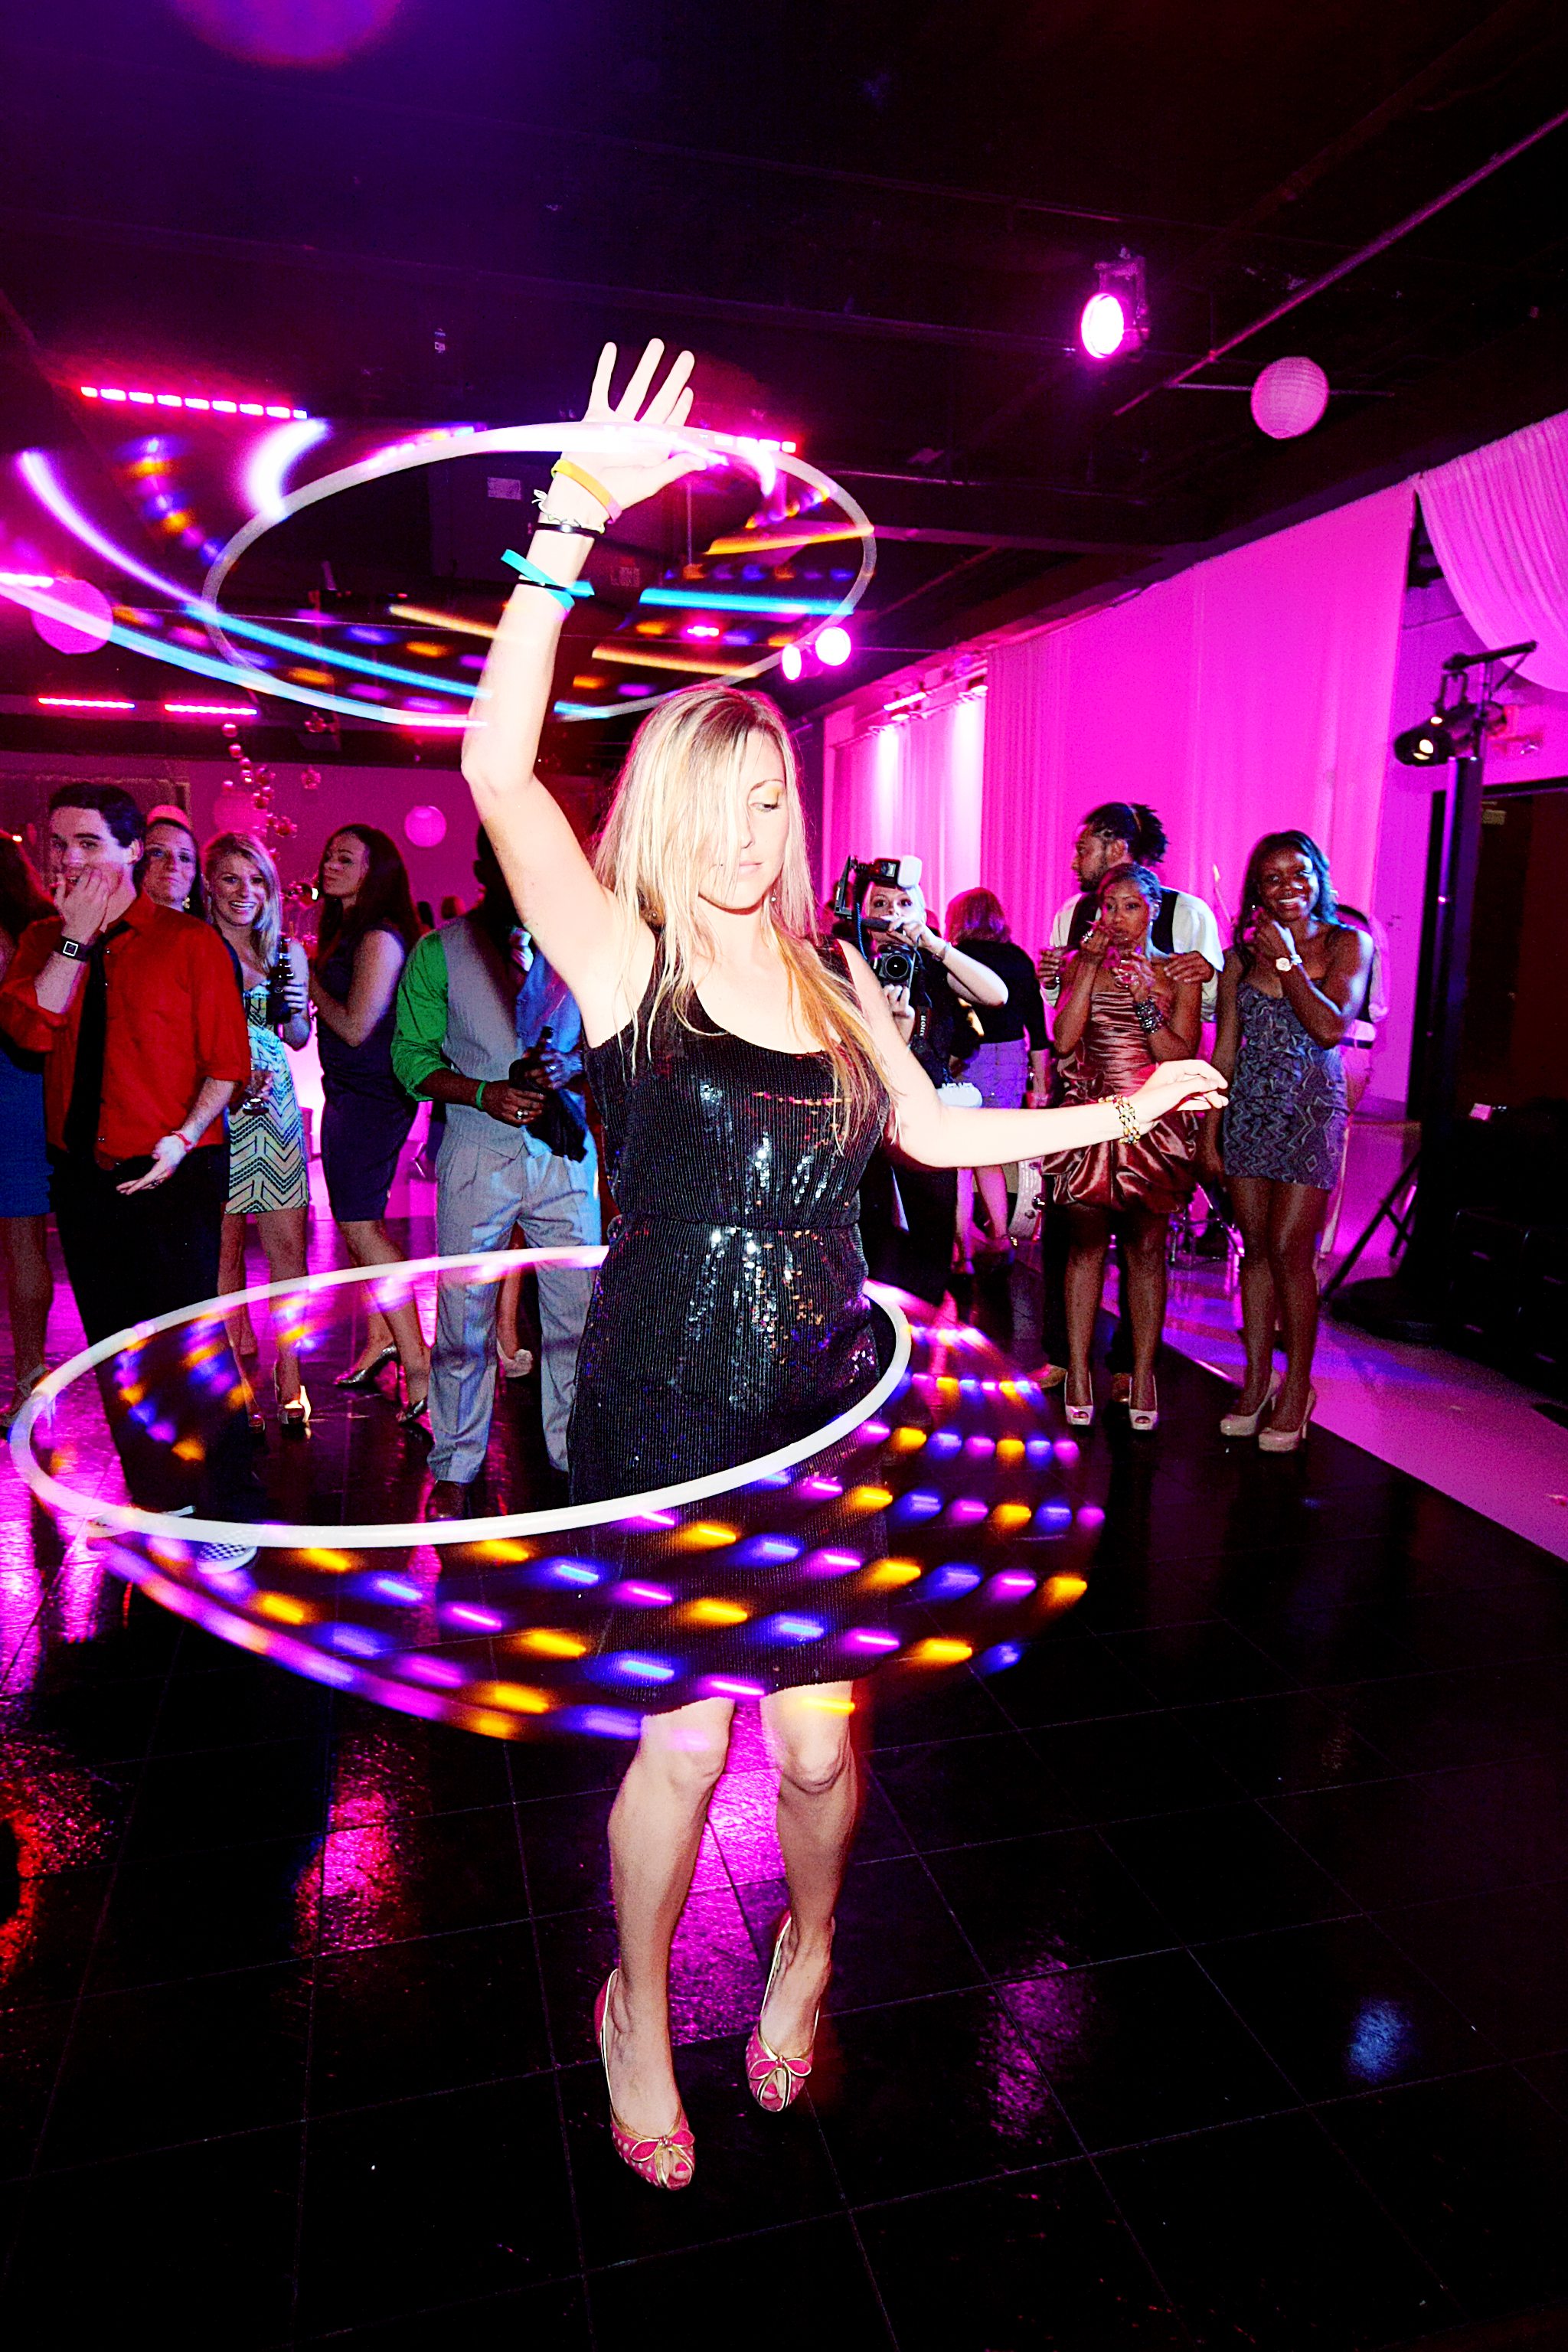 Light Up Hoola Hoops at wedding reception